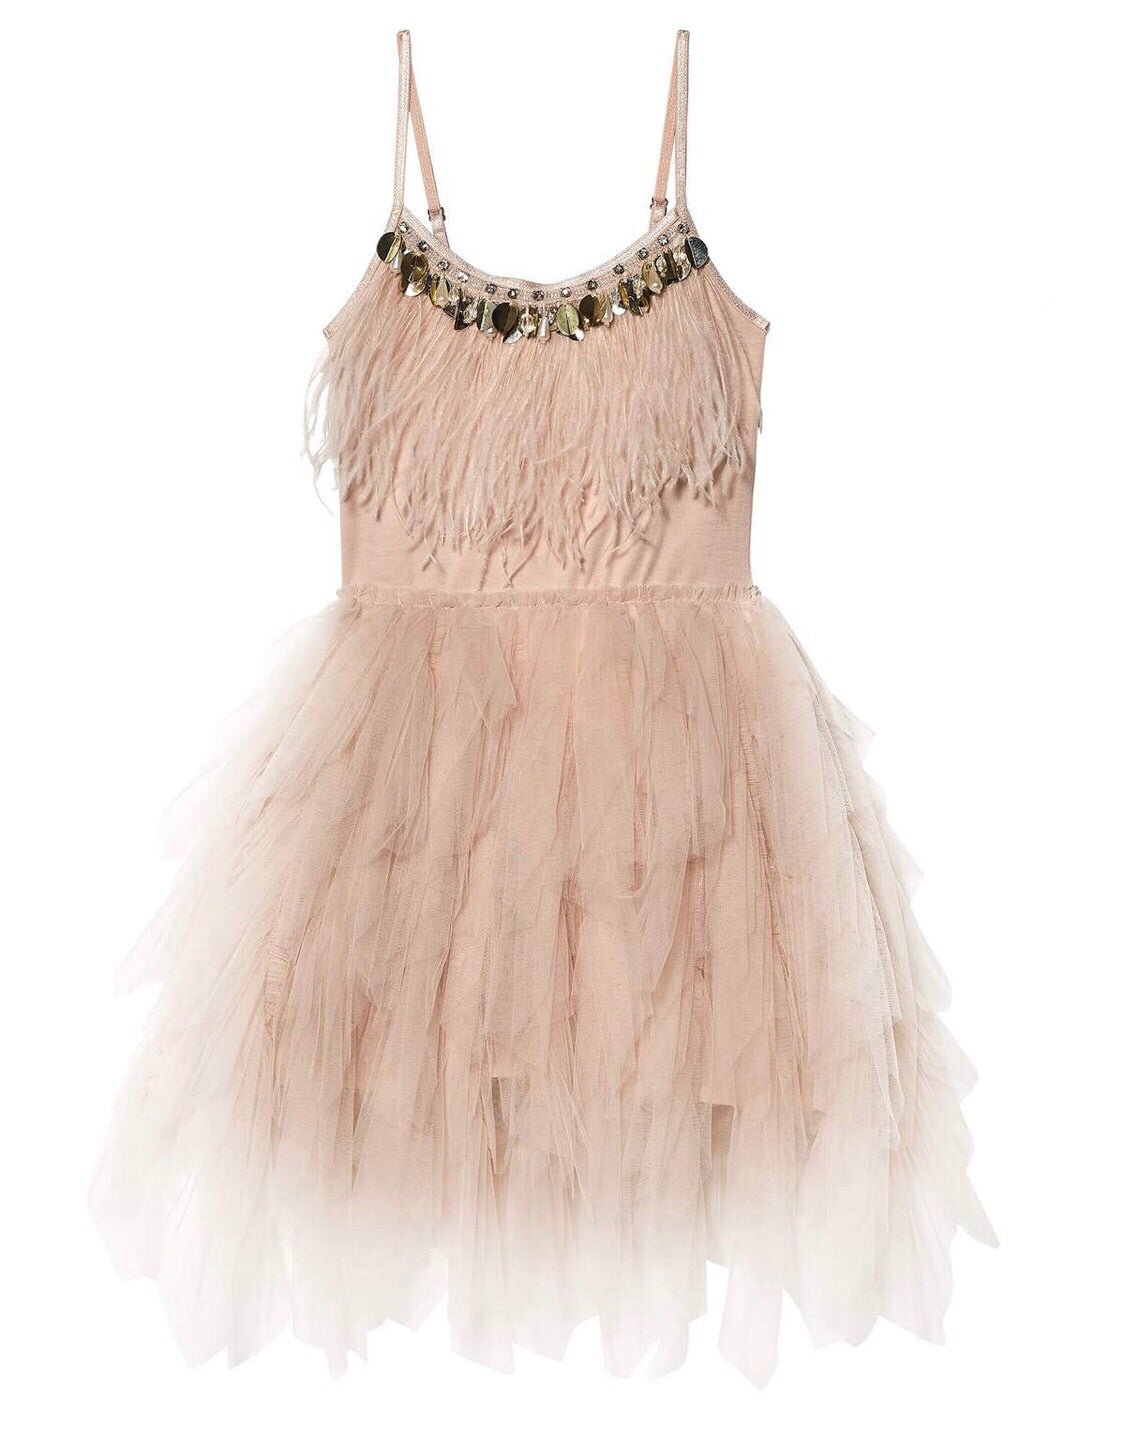 Tutu Du Monde Swan Queen Tutu Dress - Beige